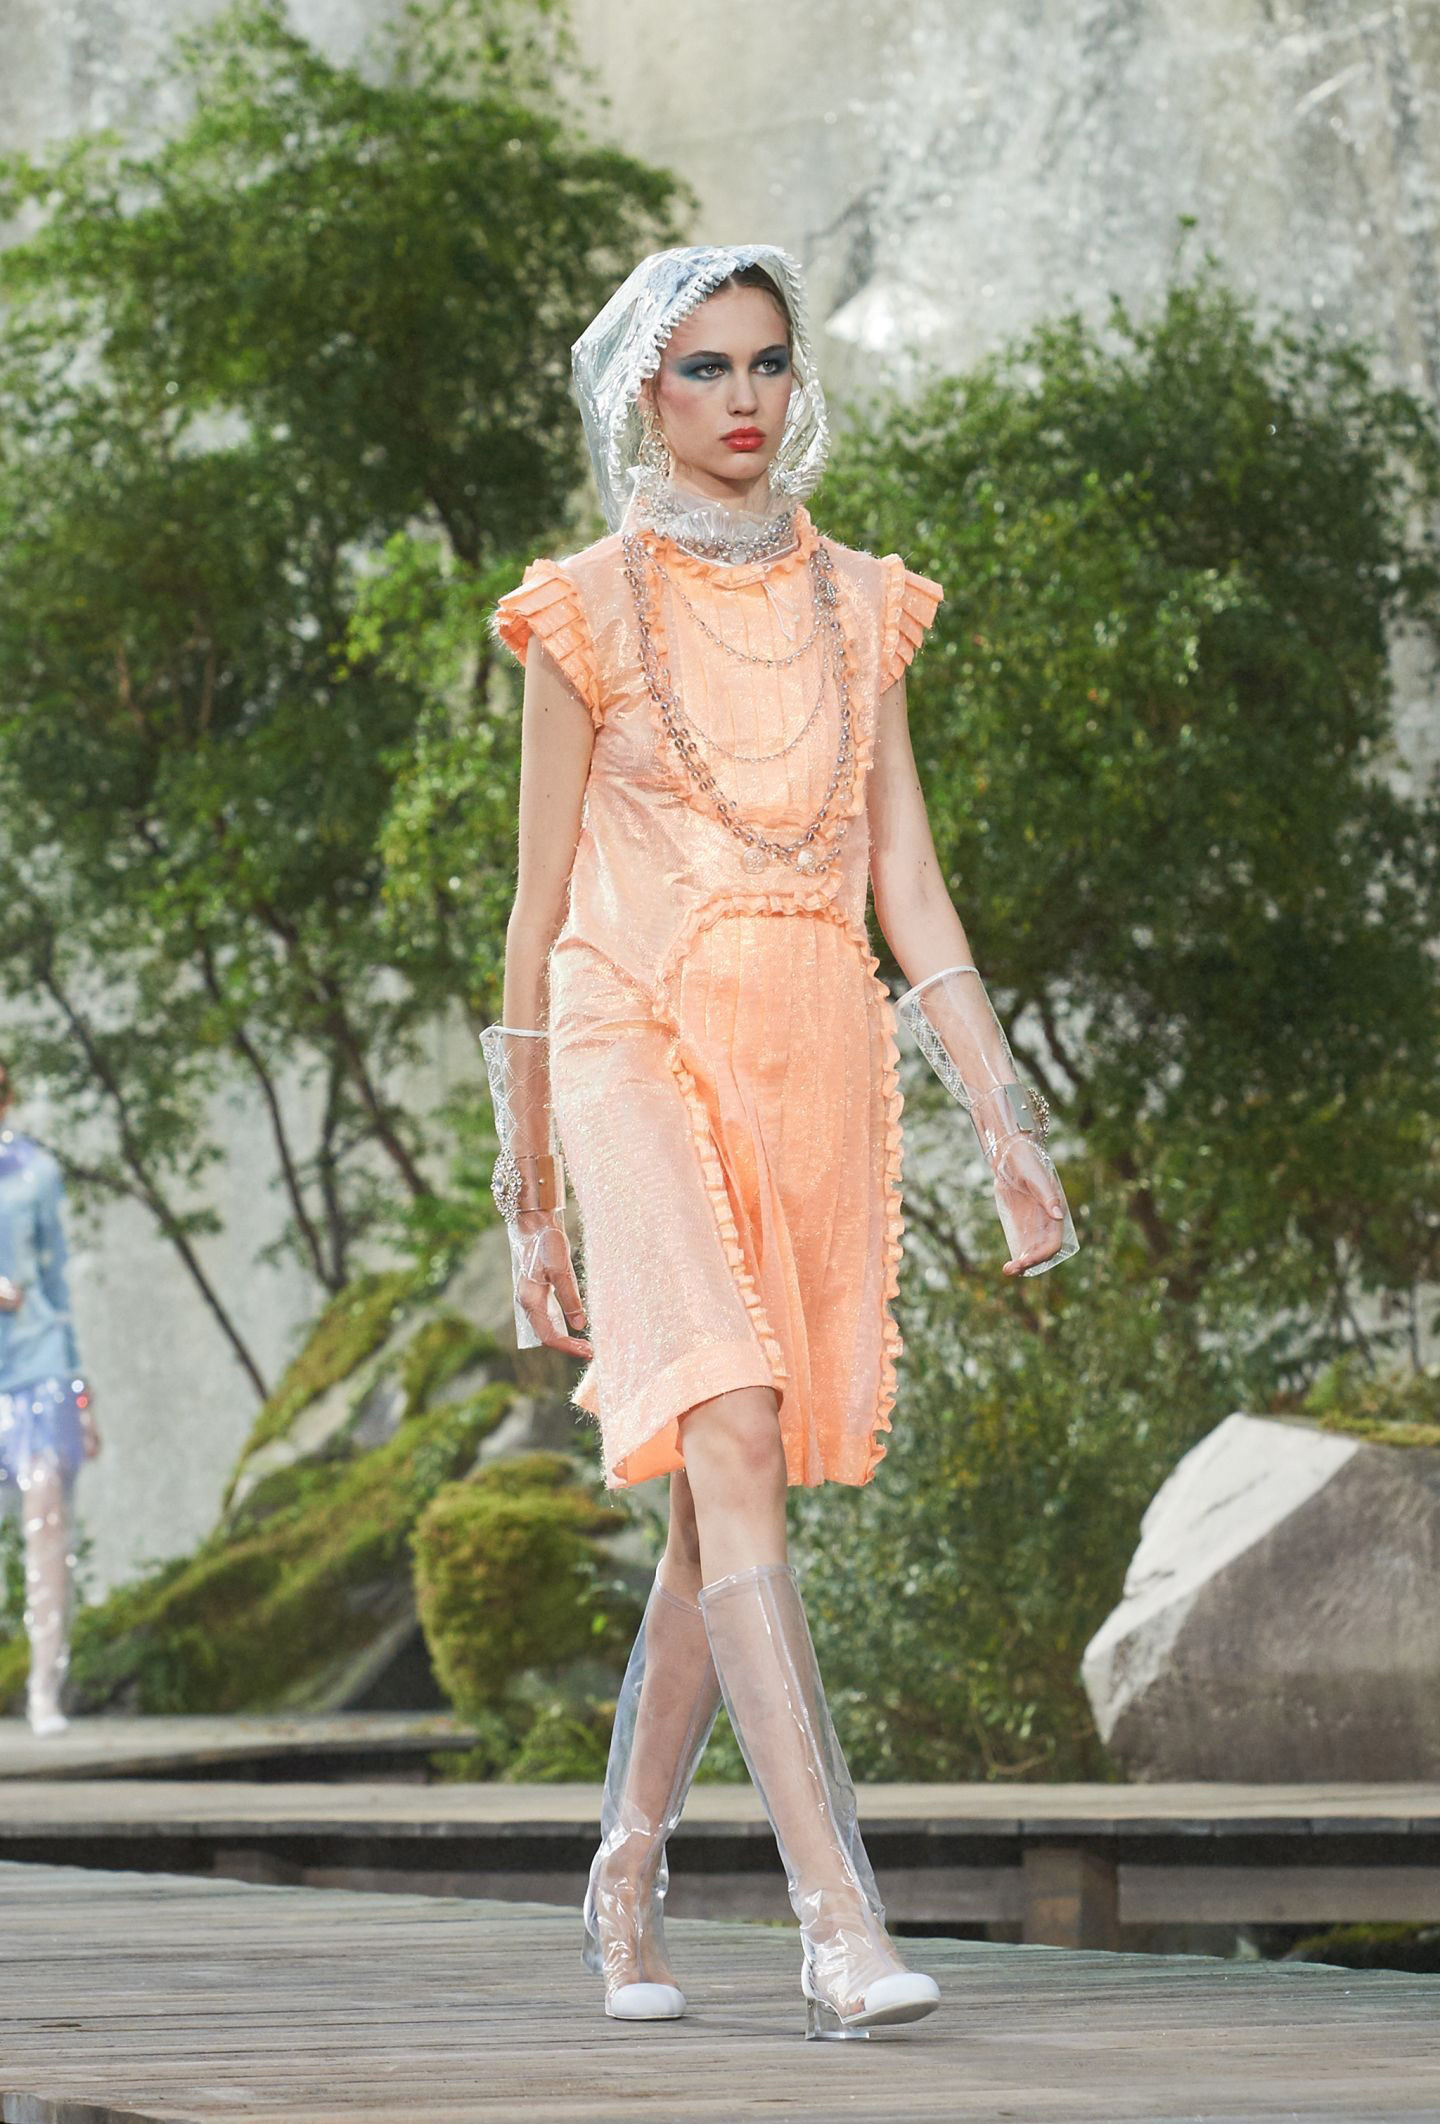 Chanel Spring/Summer 2018 Ready-to-Wear Collection